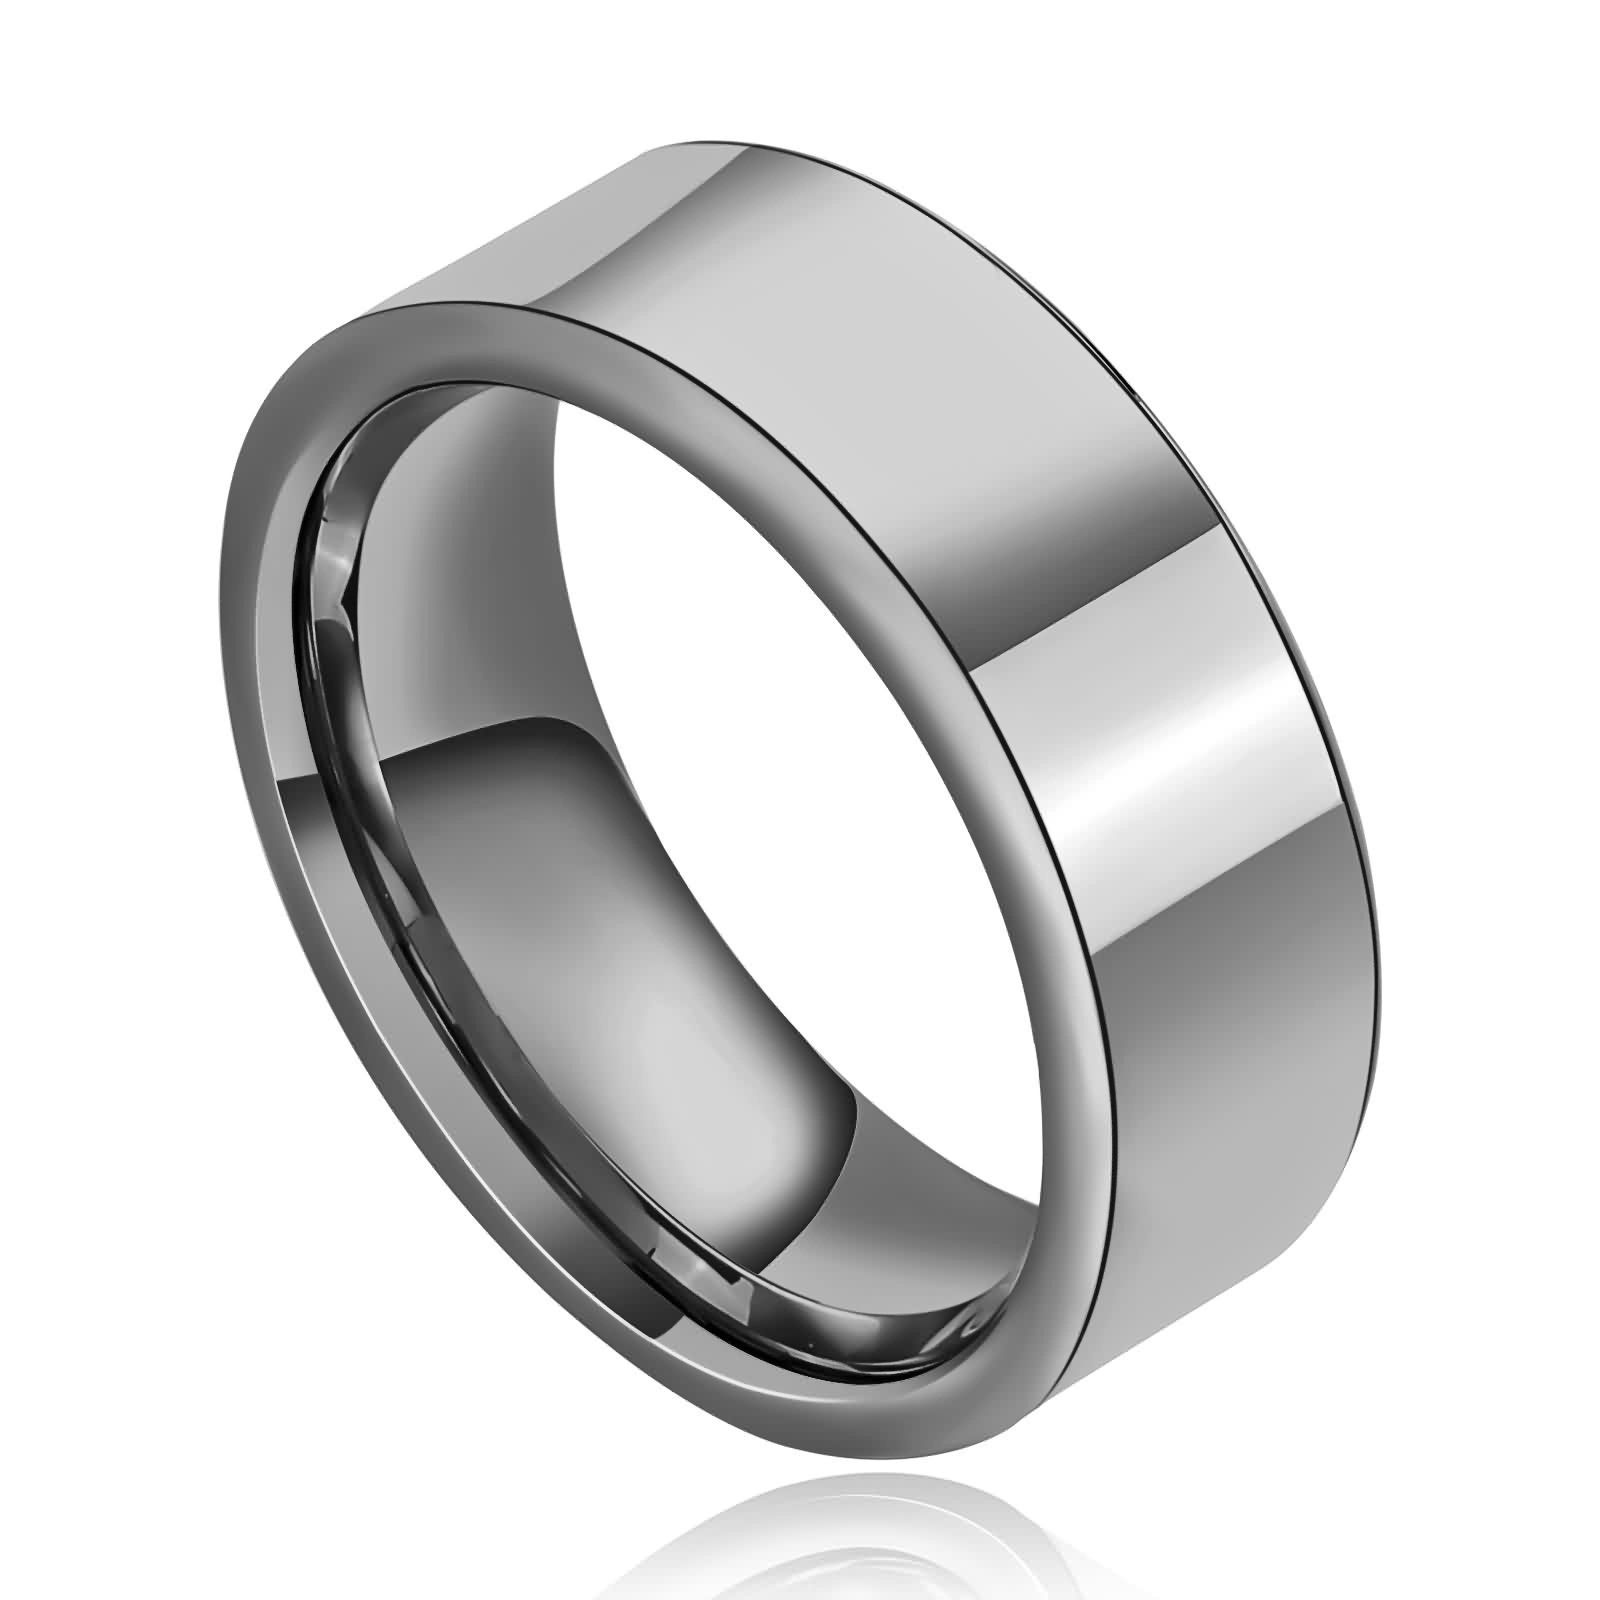 KnSam Stainless Steel Rings for Men Men's Ring High Polished Wide Flat Wedding Band Silver Size 11